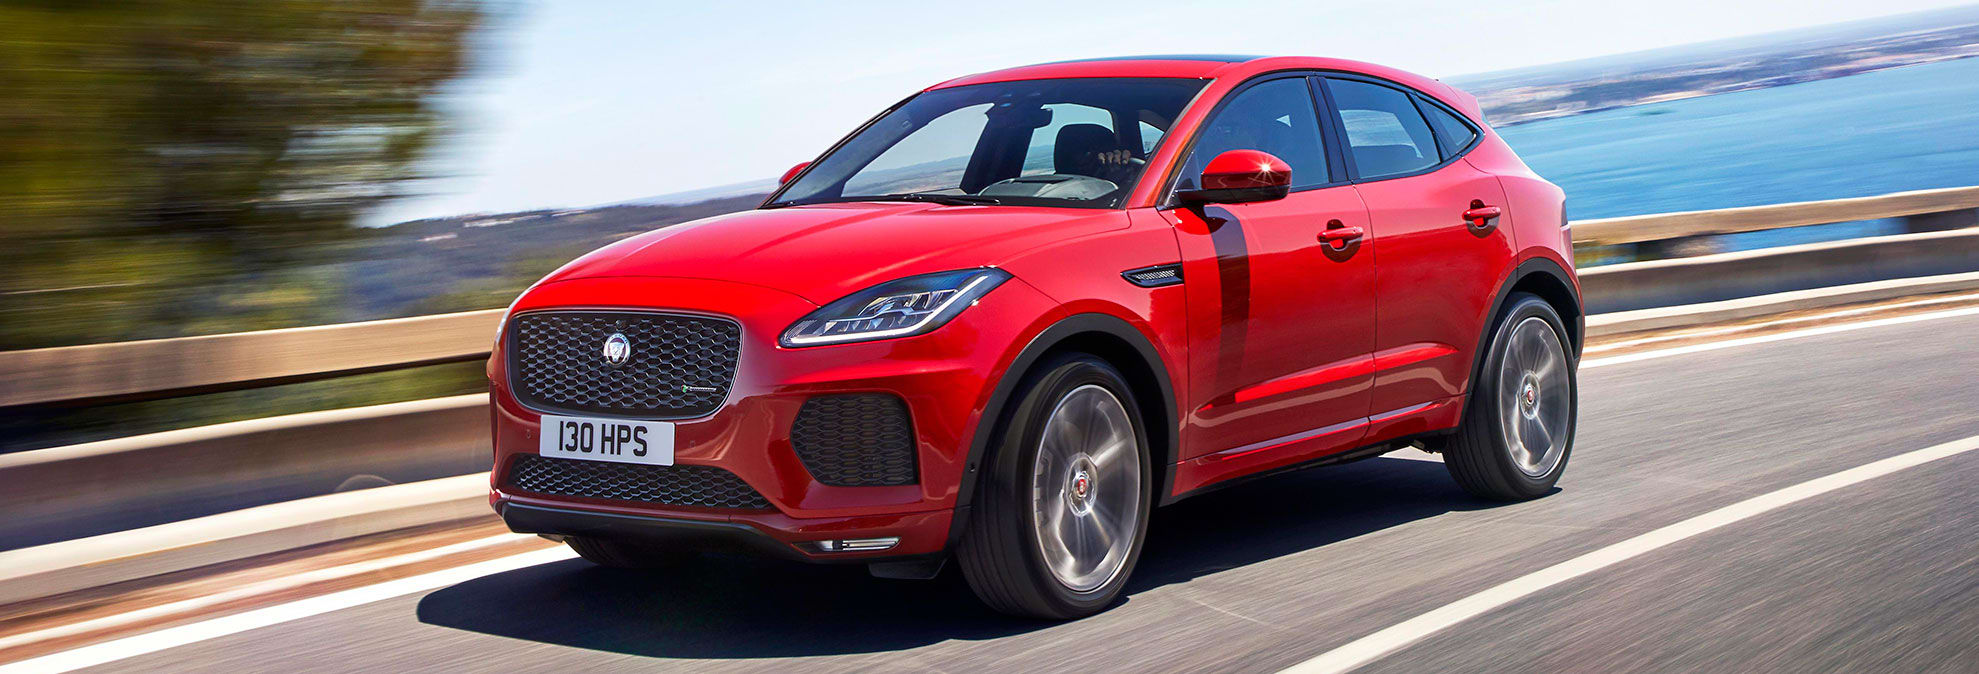 Best Snow Blowers For 2018 >> New 2018 Jaguar E-Pace Is a Compact SUV with Big Ambitions - Consumer Reports